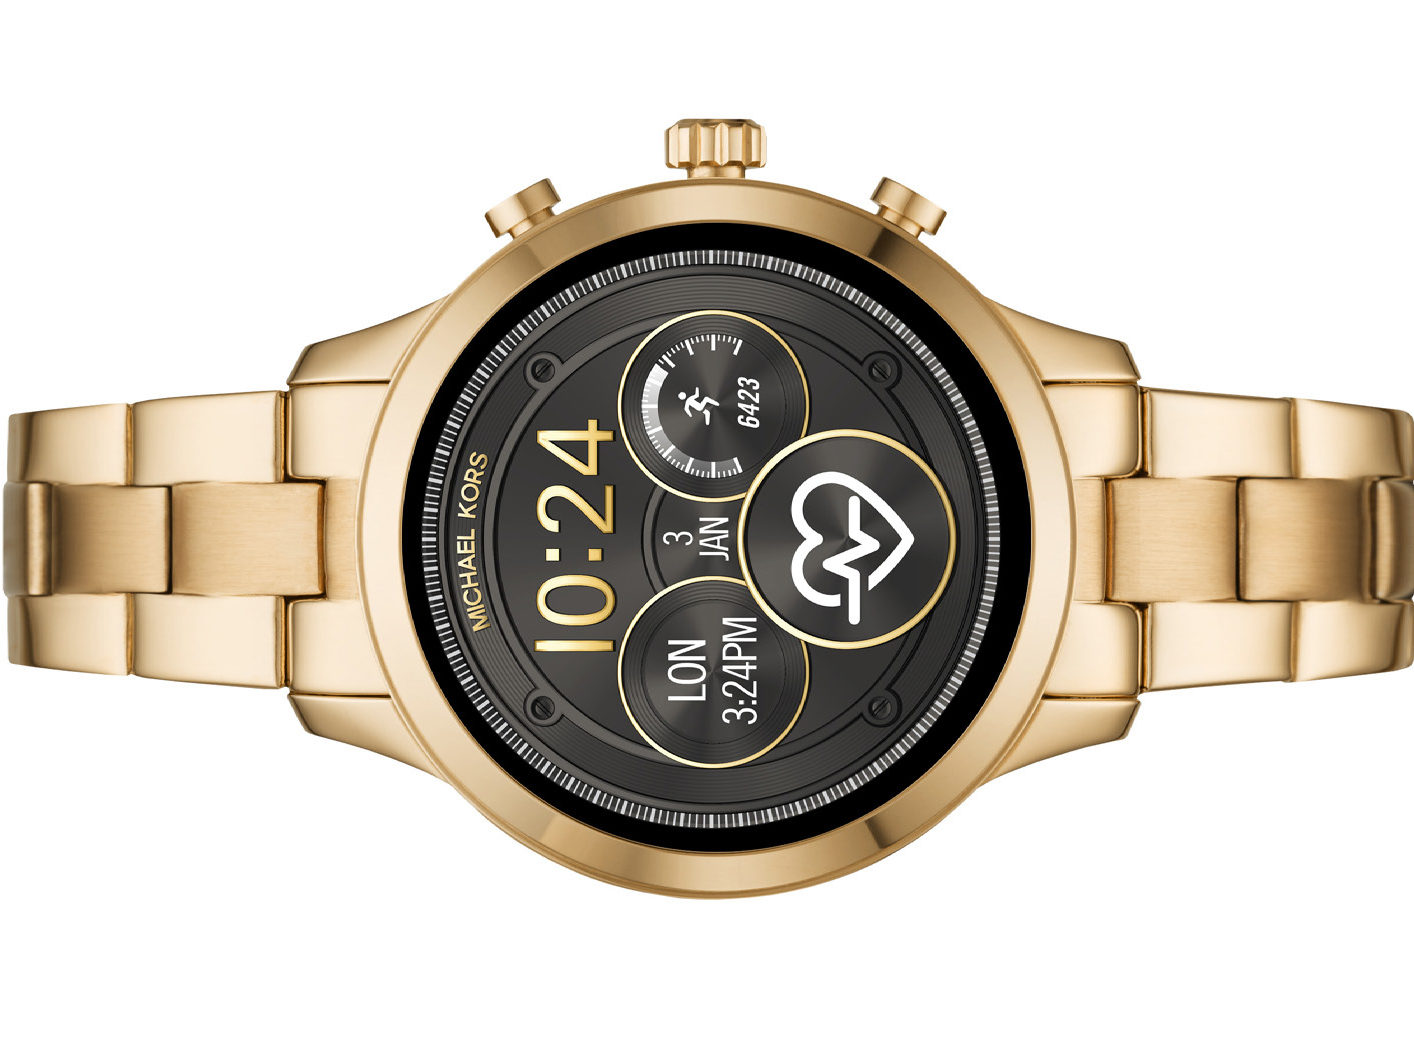 7832bebad2f0 Michael Kors creates next generation smartwatch in revived Runway style